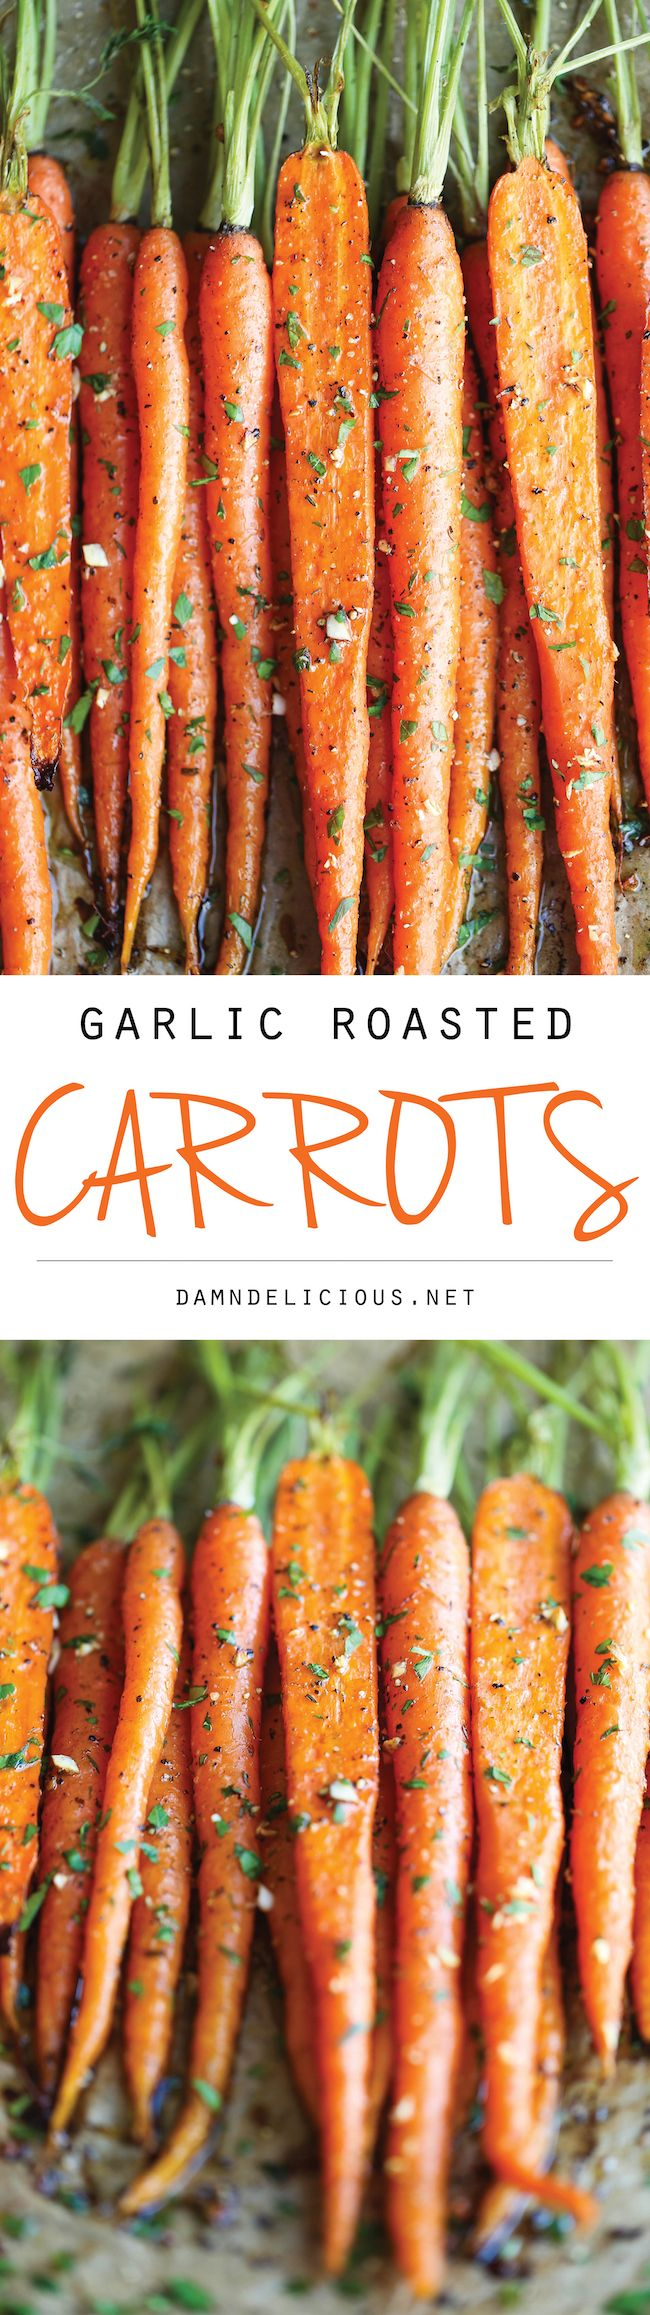 Garlic Roasted Carrots - This is really the best and easiest way to roast carrots. All you need is 5 min prep. It's just that quick and easy! 59.5 calories./Delicious! Followed recipe exactly and I will make again.